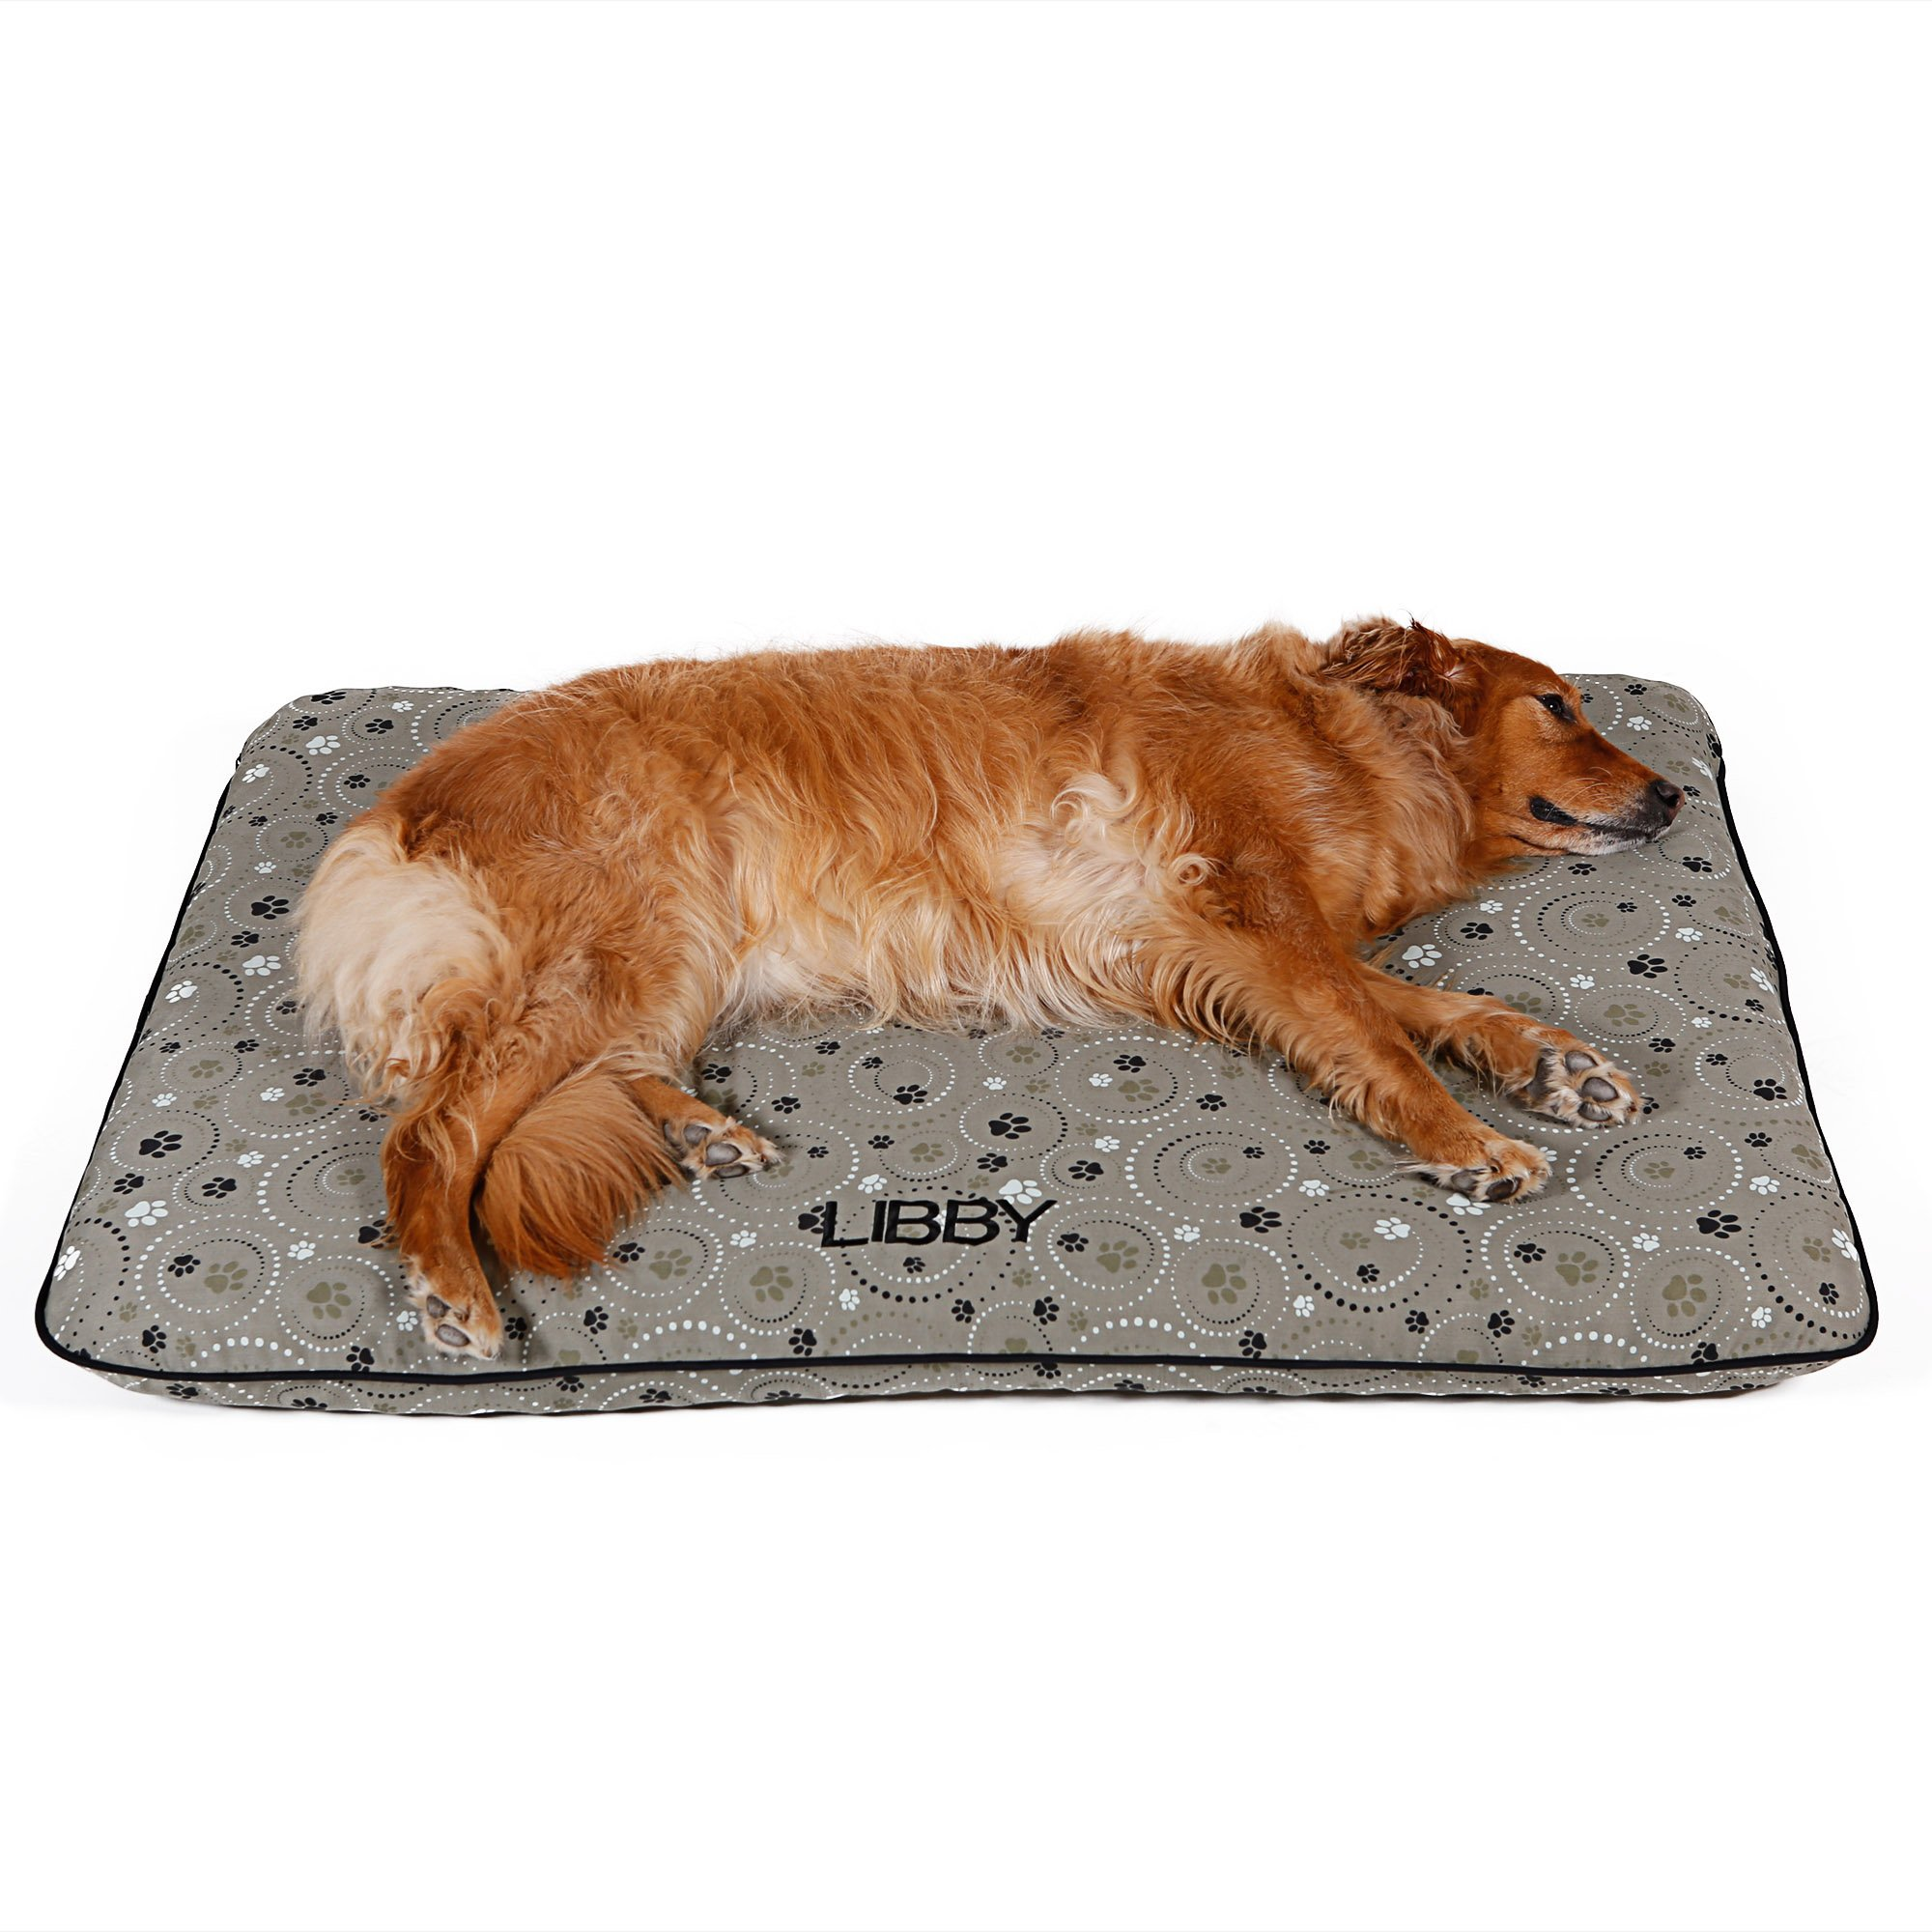 camouflage beds memory hunting product foam dog bed large dogs deluxe for